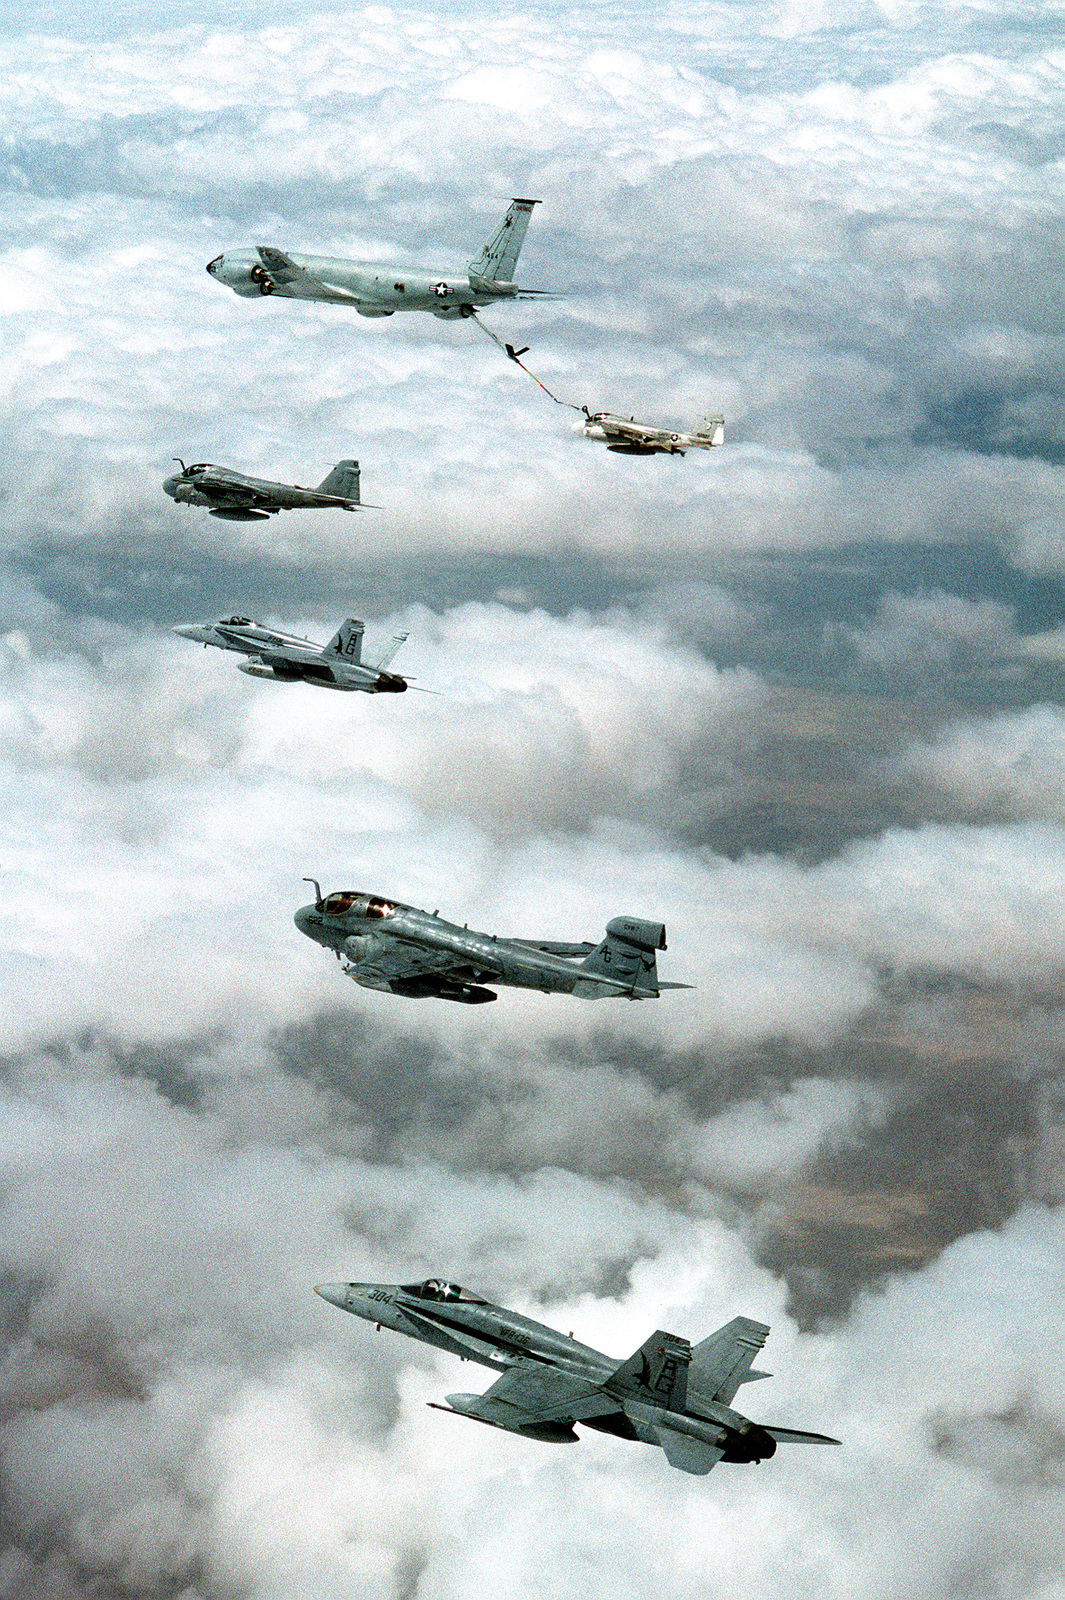 From top to bottom, a U.S. Air Force KC-135R Stratotanker refueling a KA-6D Intruder tanker from Attack Squadron 34 (VA-34), an A-6E Intruder attack aircraft, an F/A-18C Hornet from Strike Fighter Squadron 136 (VFA-136), and an EA-6B Prowler from Tactical Electronic Warfare Squadron 140 (VAQ-140) and another VFA-136 F/A-18C Hornet during flight operations off the nuclear-powered USS DWIGHT D. EISENHOWER (CVN-69) in the Persian Gulf